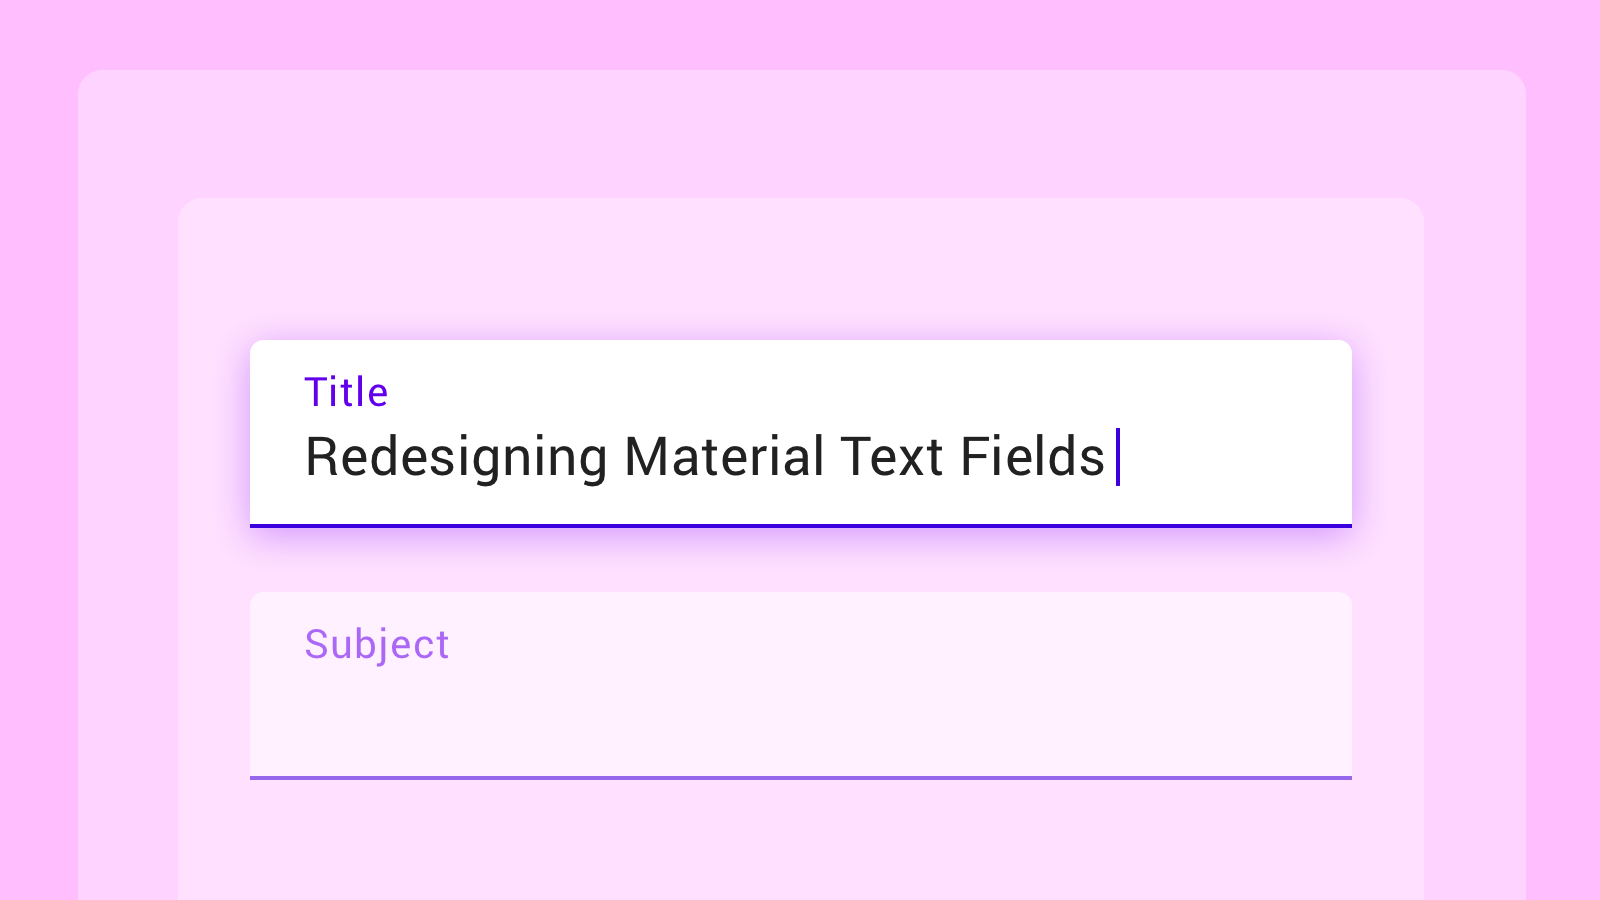 New Material Text Field